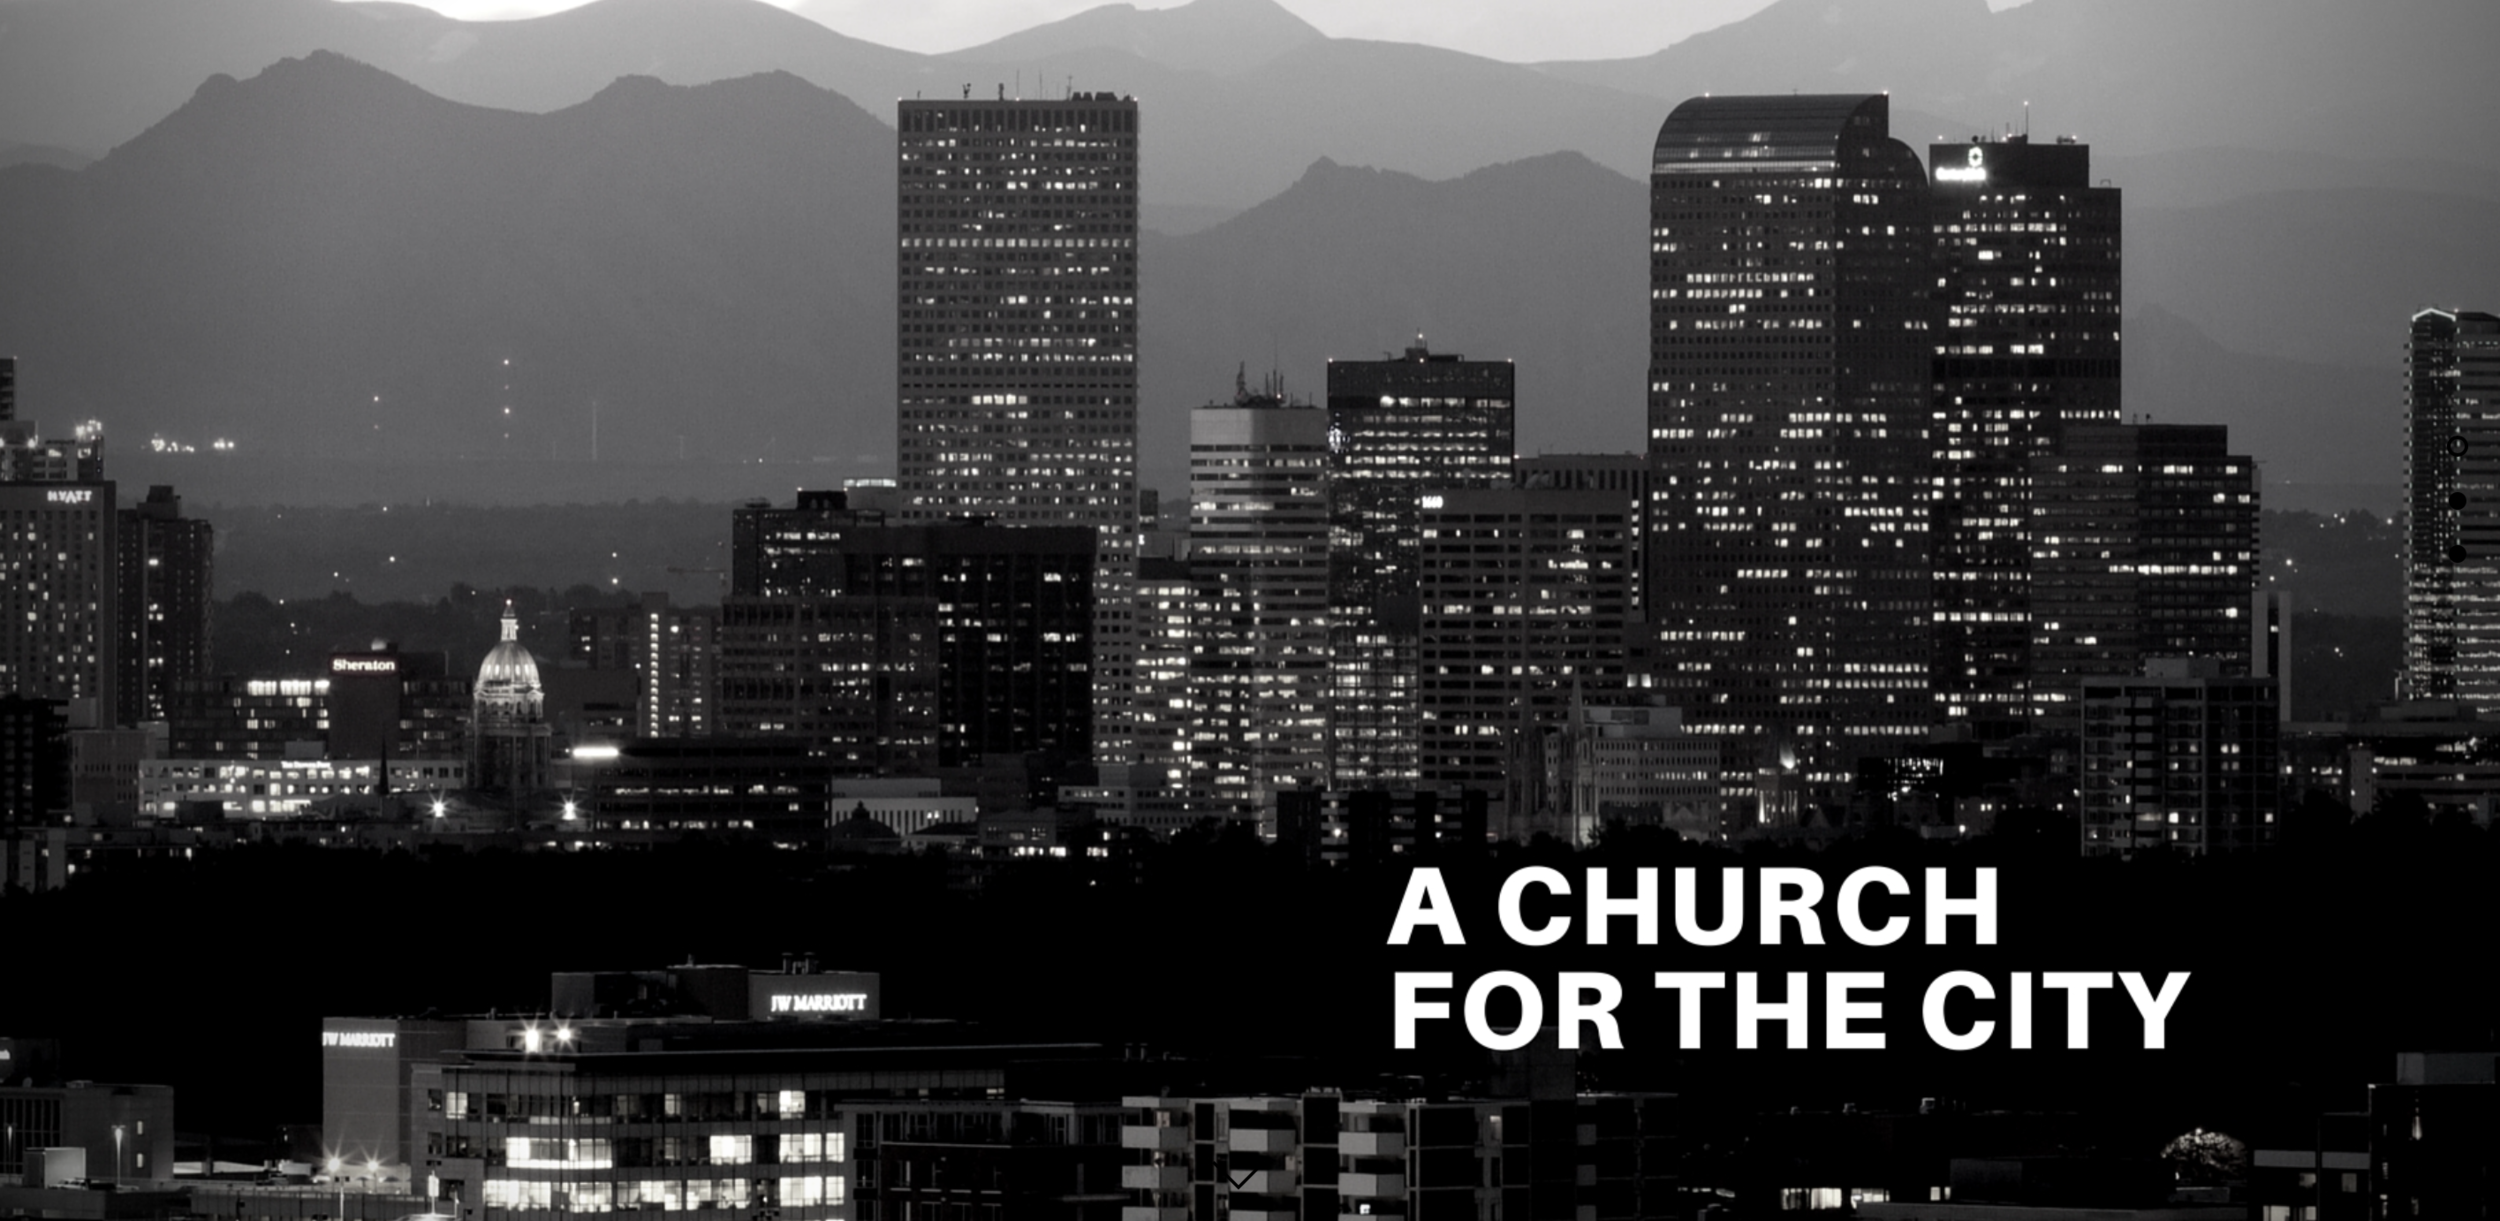 a church for the city - We see a city in urgent need of a great awakening. A city living in darkness but open to the hope and life found only in Jesus. We see a city with great potential and believe God is calling us to go boldly and proclaim the Good News to a people far from God.